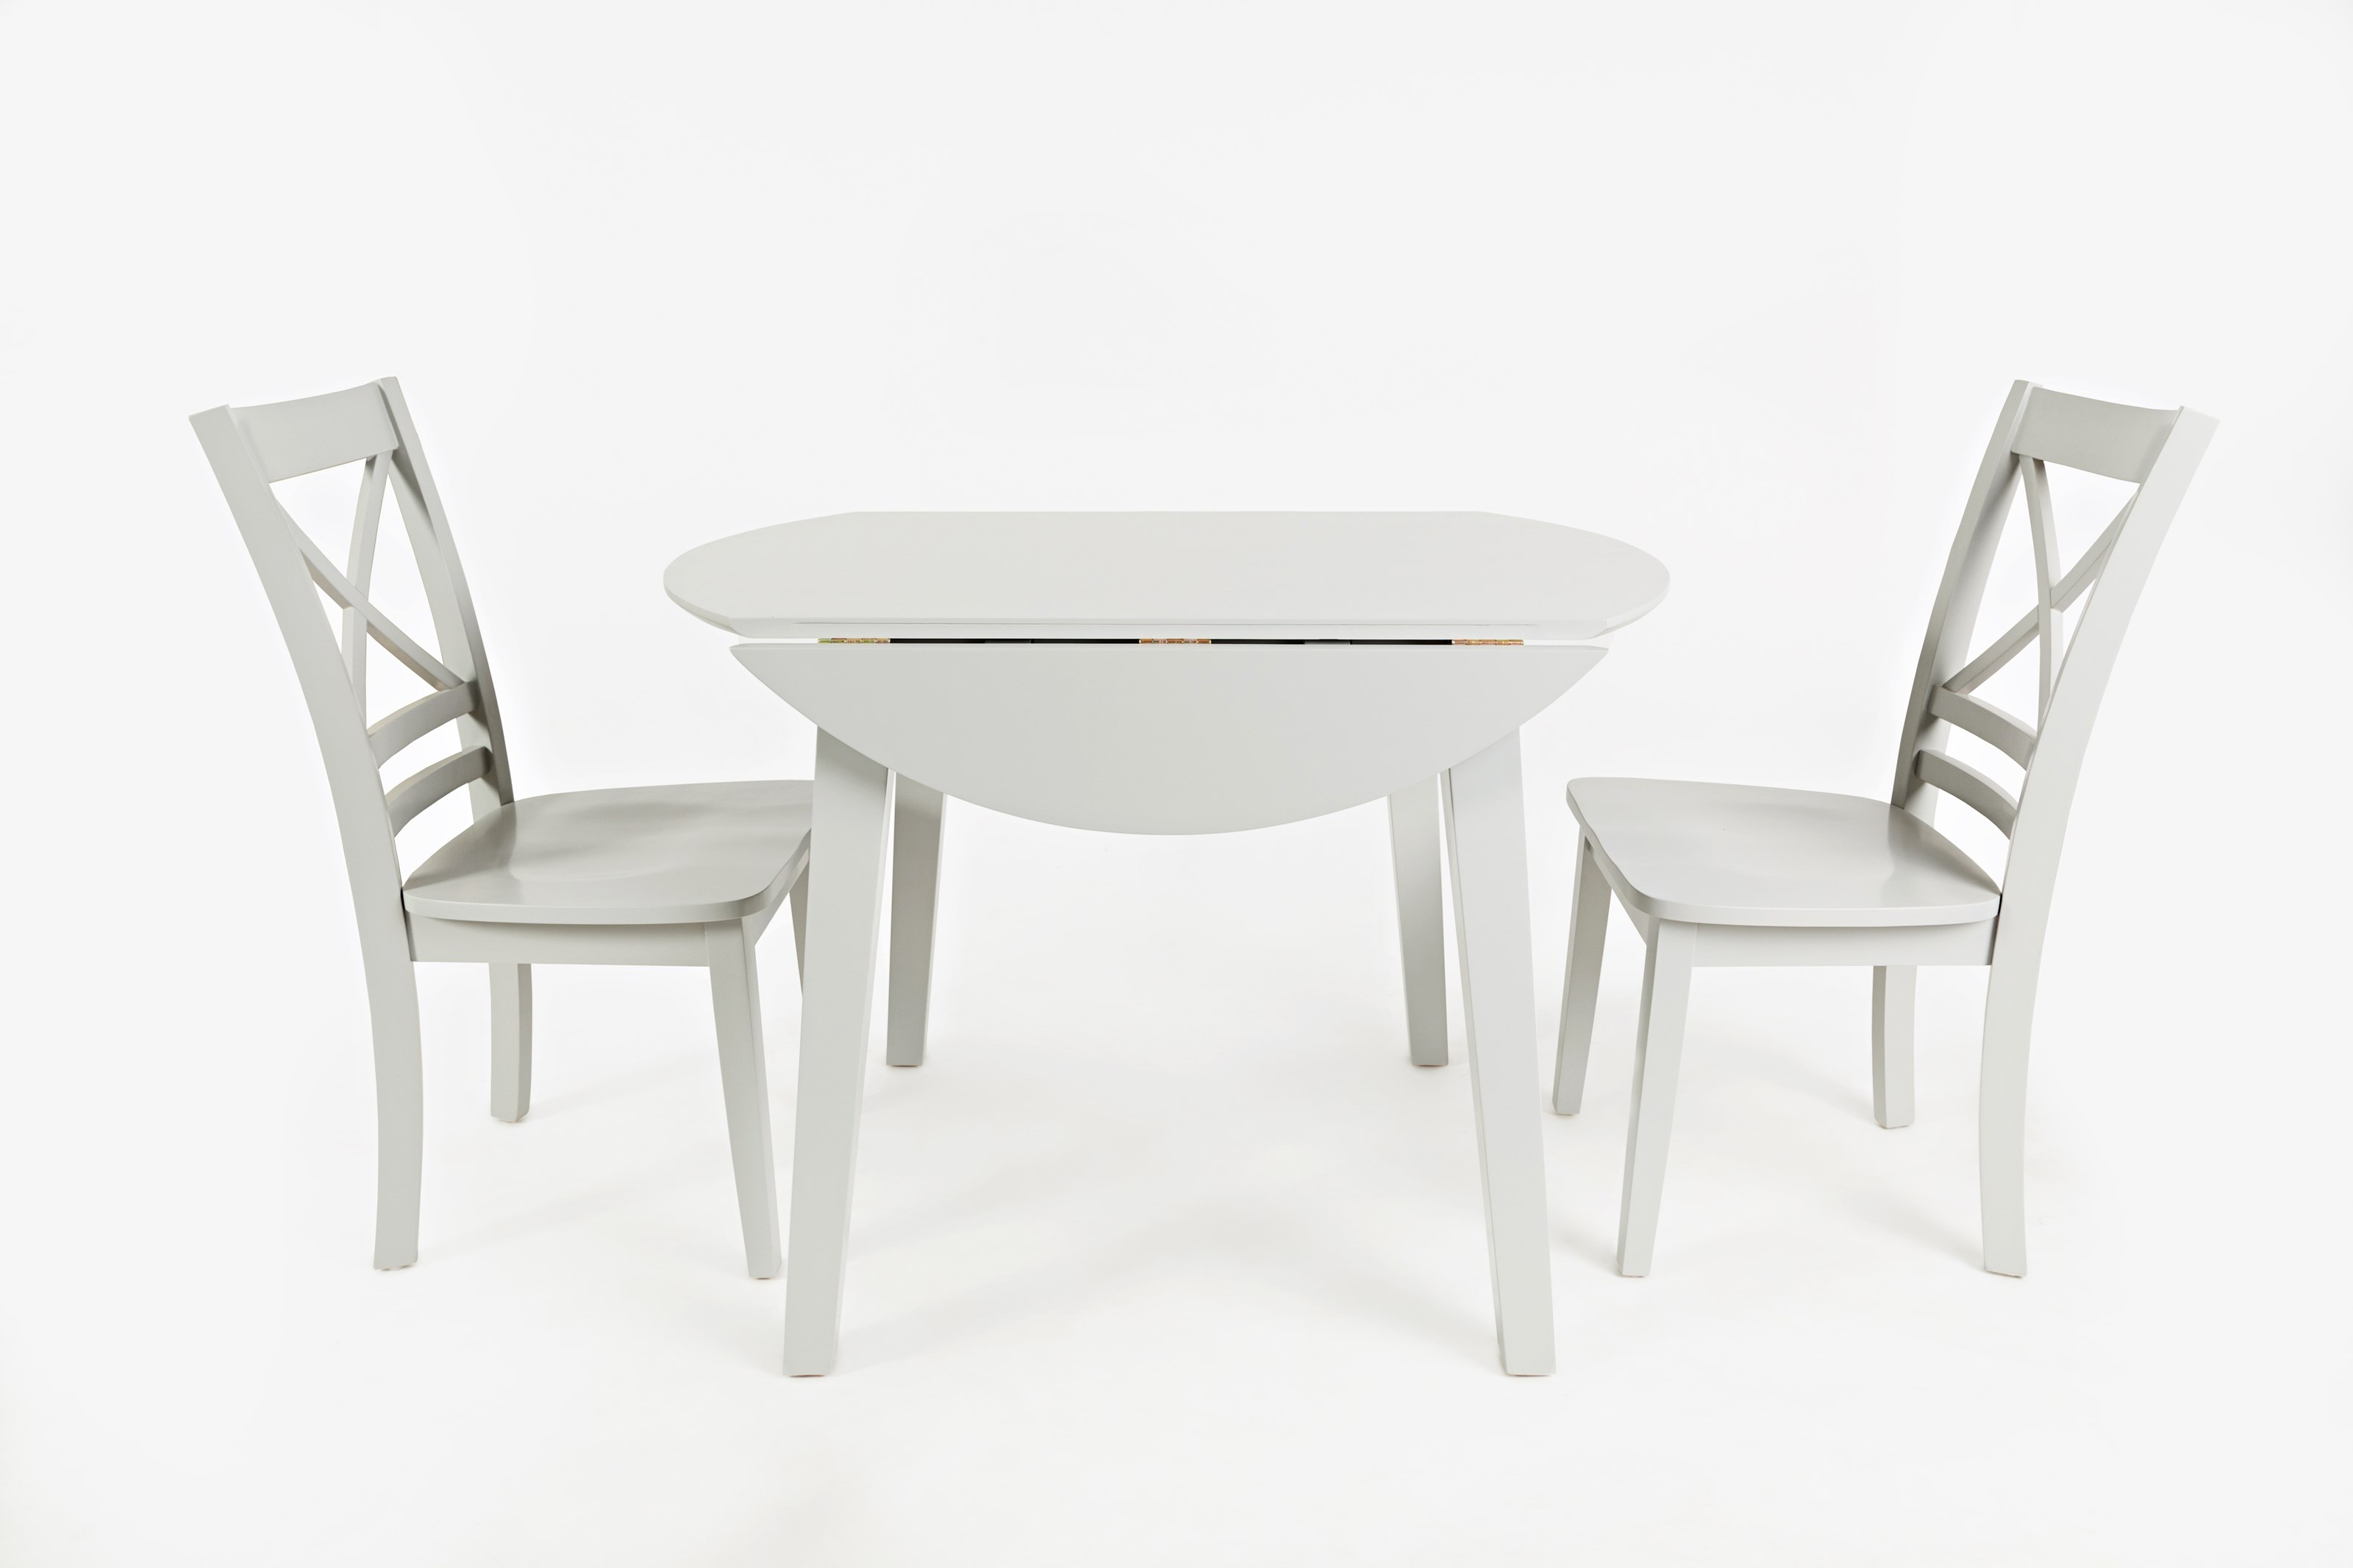 Simplicity Round Drop Leaf Table and Chair Set by Jofran at Prime Brothers Furniture